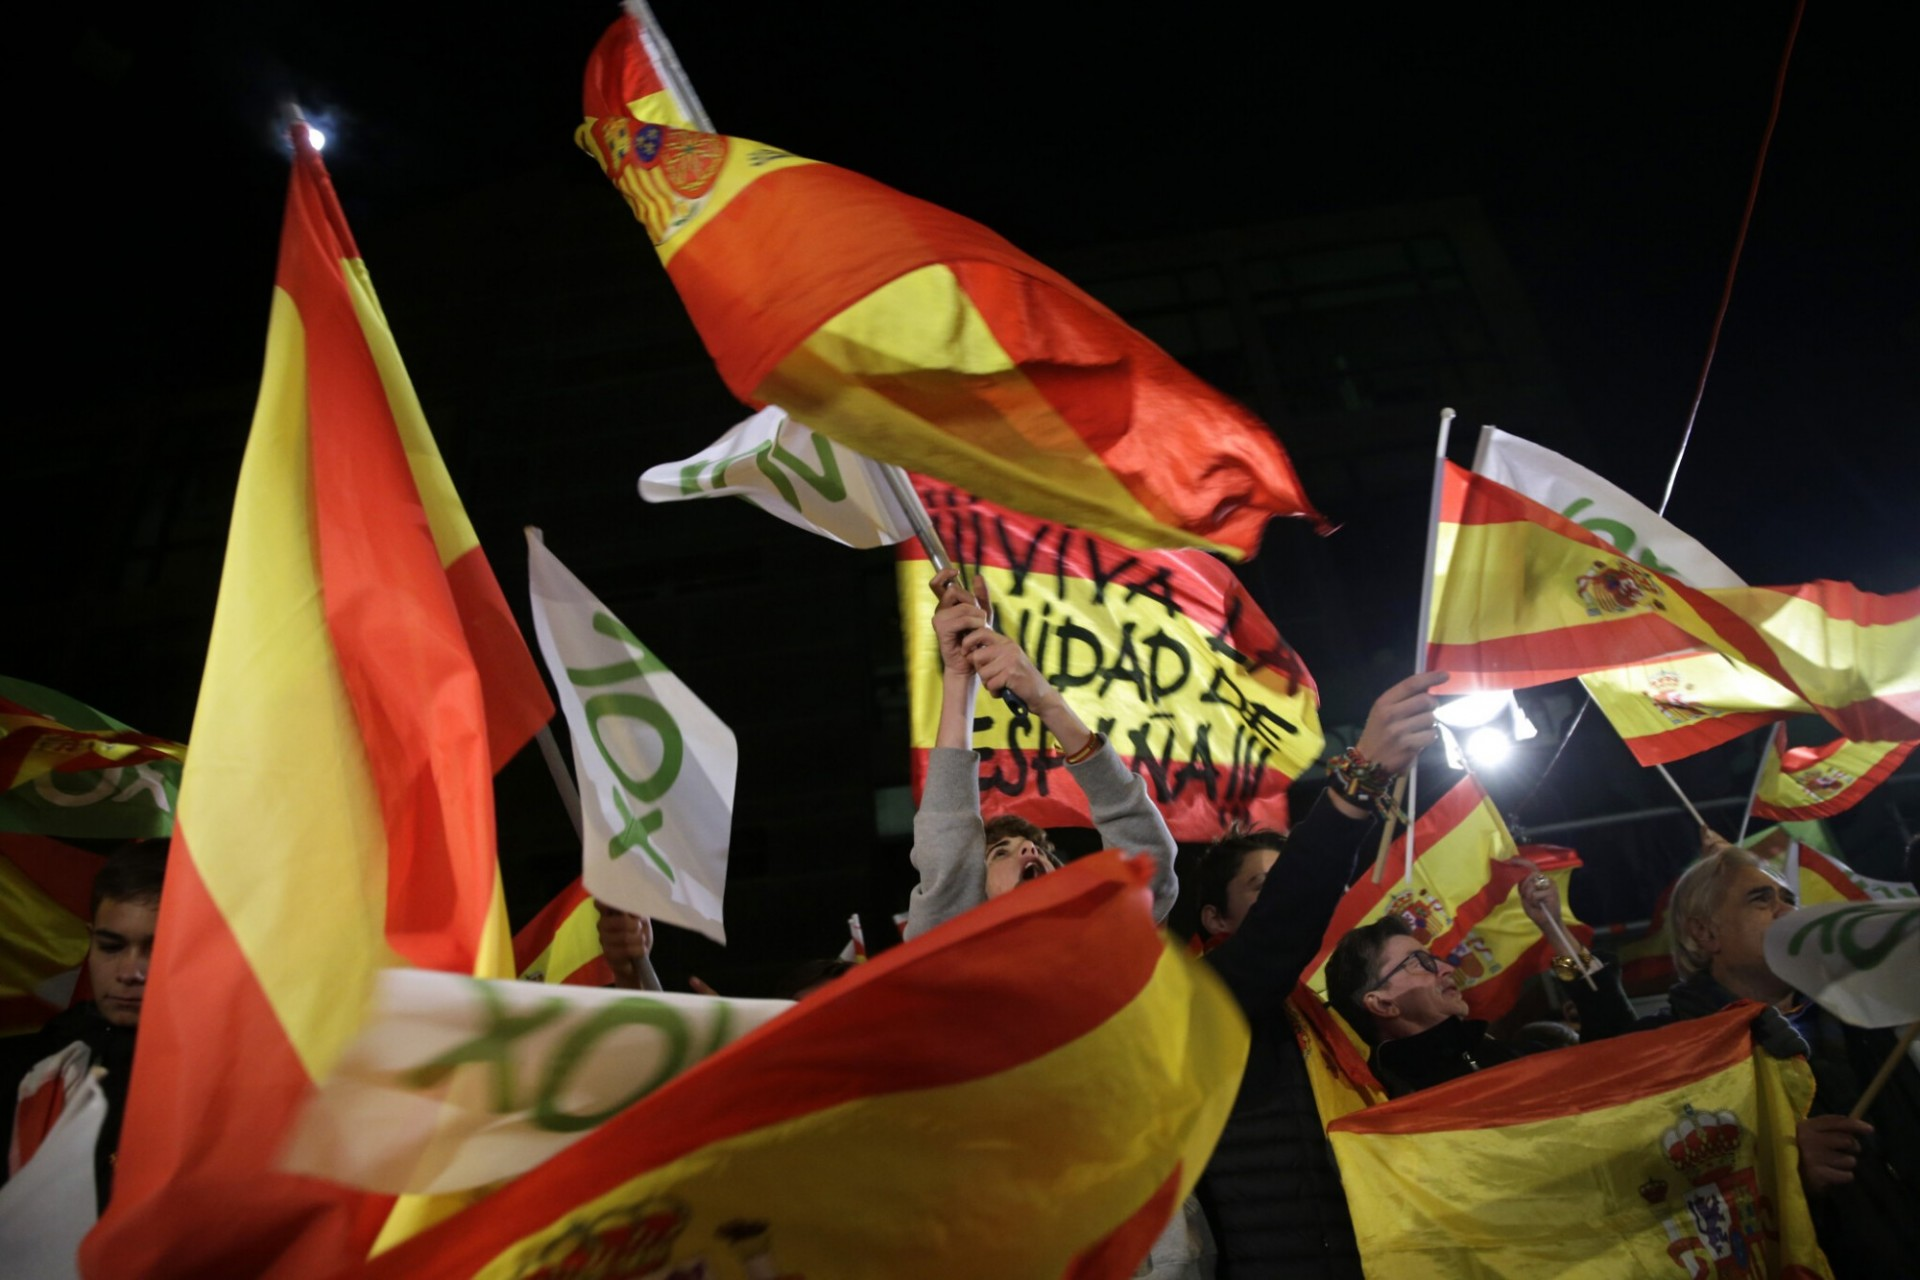 A crowd waves flags for Spain and its far-right Vox party